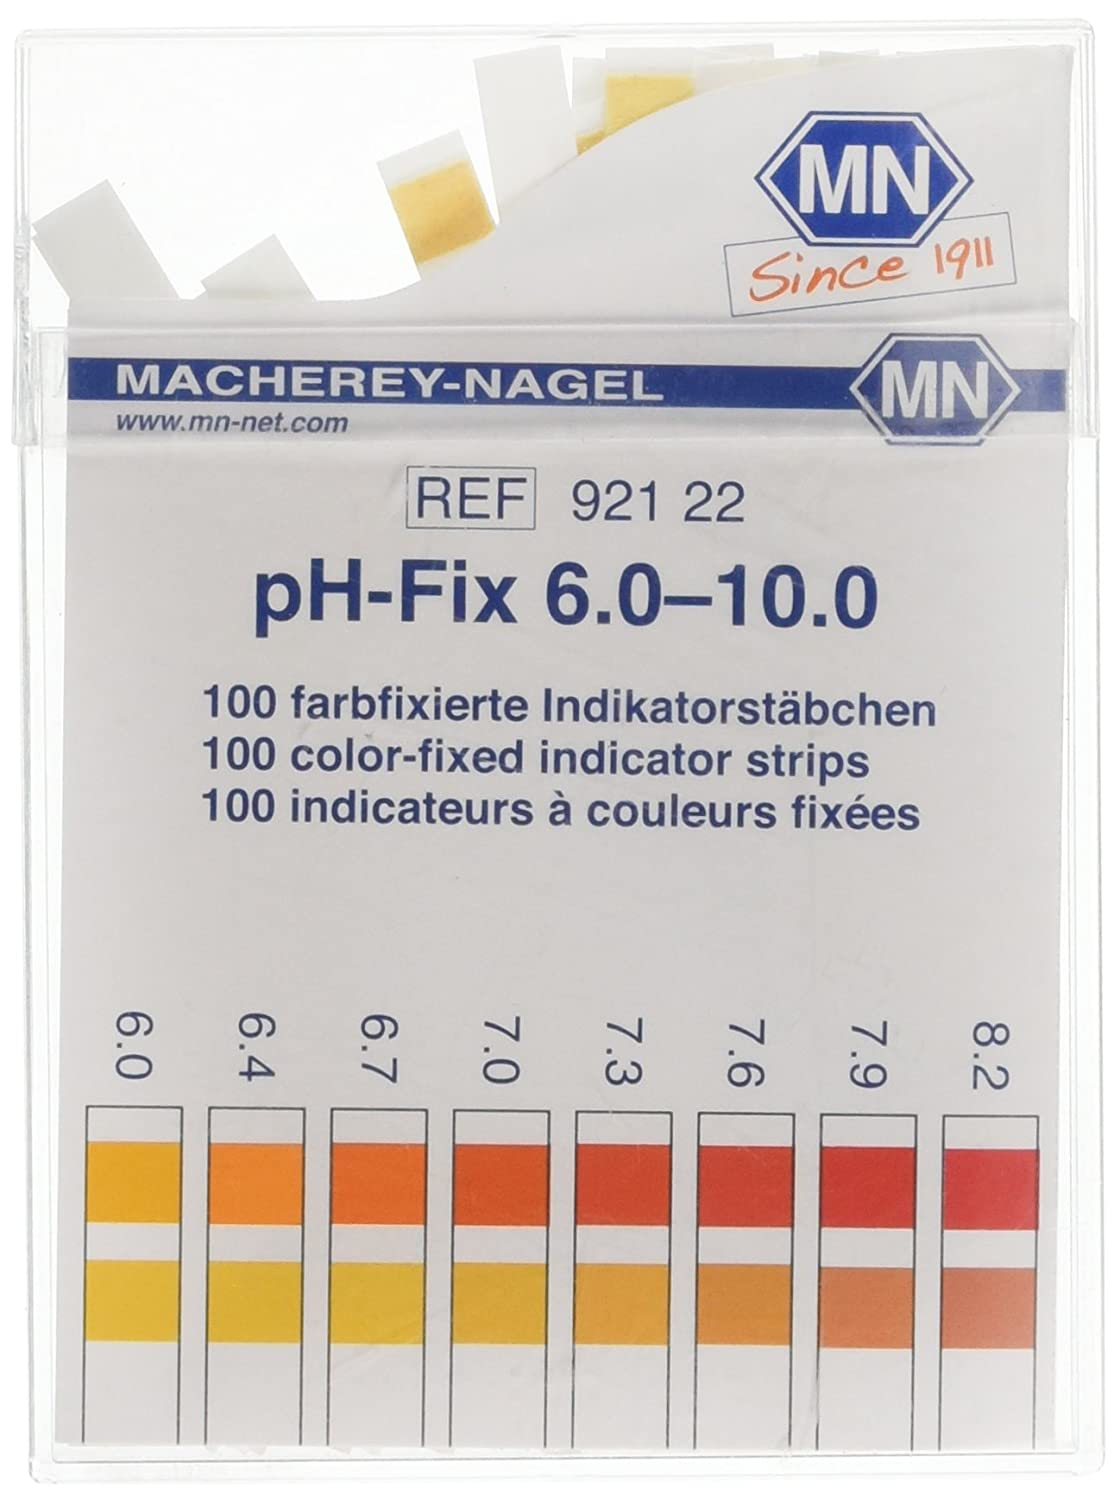 Camlab 1178895  Ph-fix Indicateur bâ ton, PH 6.0– 10.0, 6  mm x 85  mm (lot de 100) PH 6.0-10.0 6 mm x 85 mm (lot de 100)